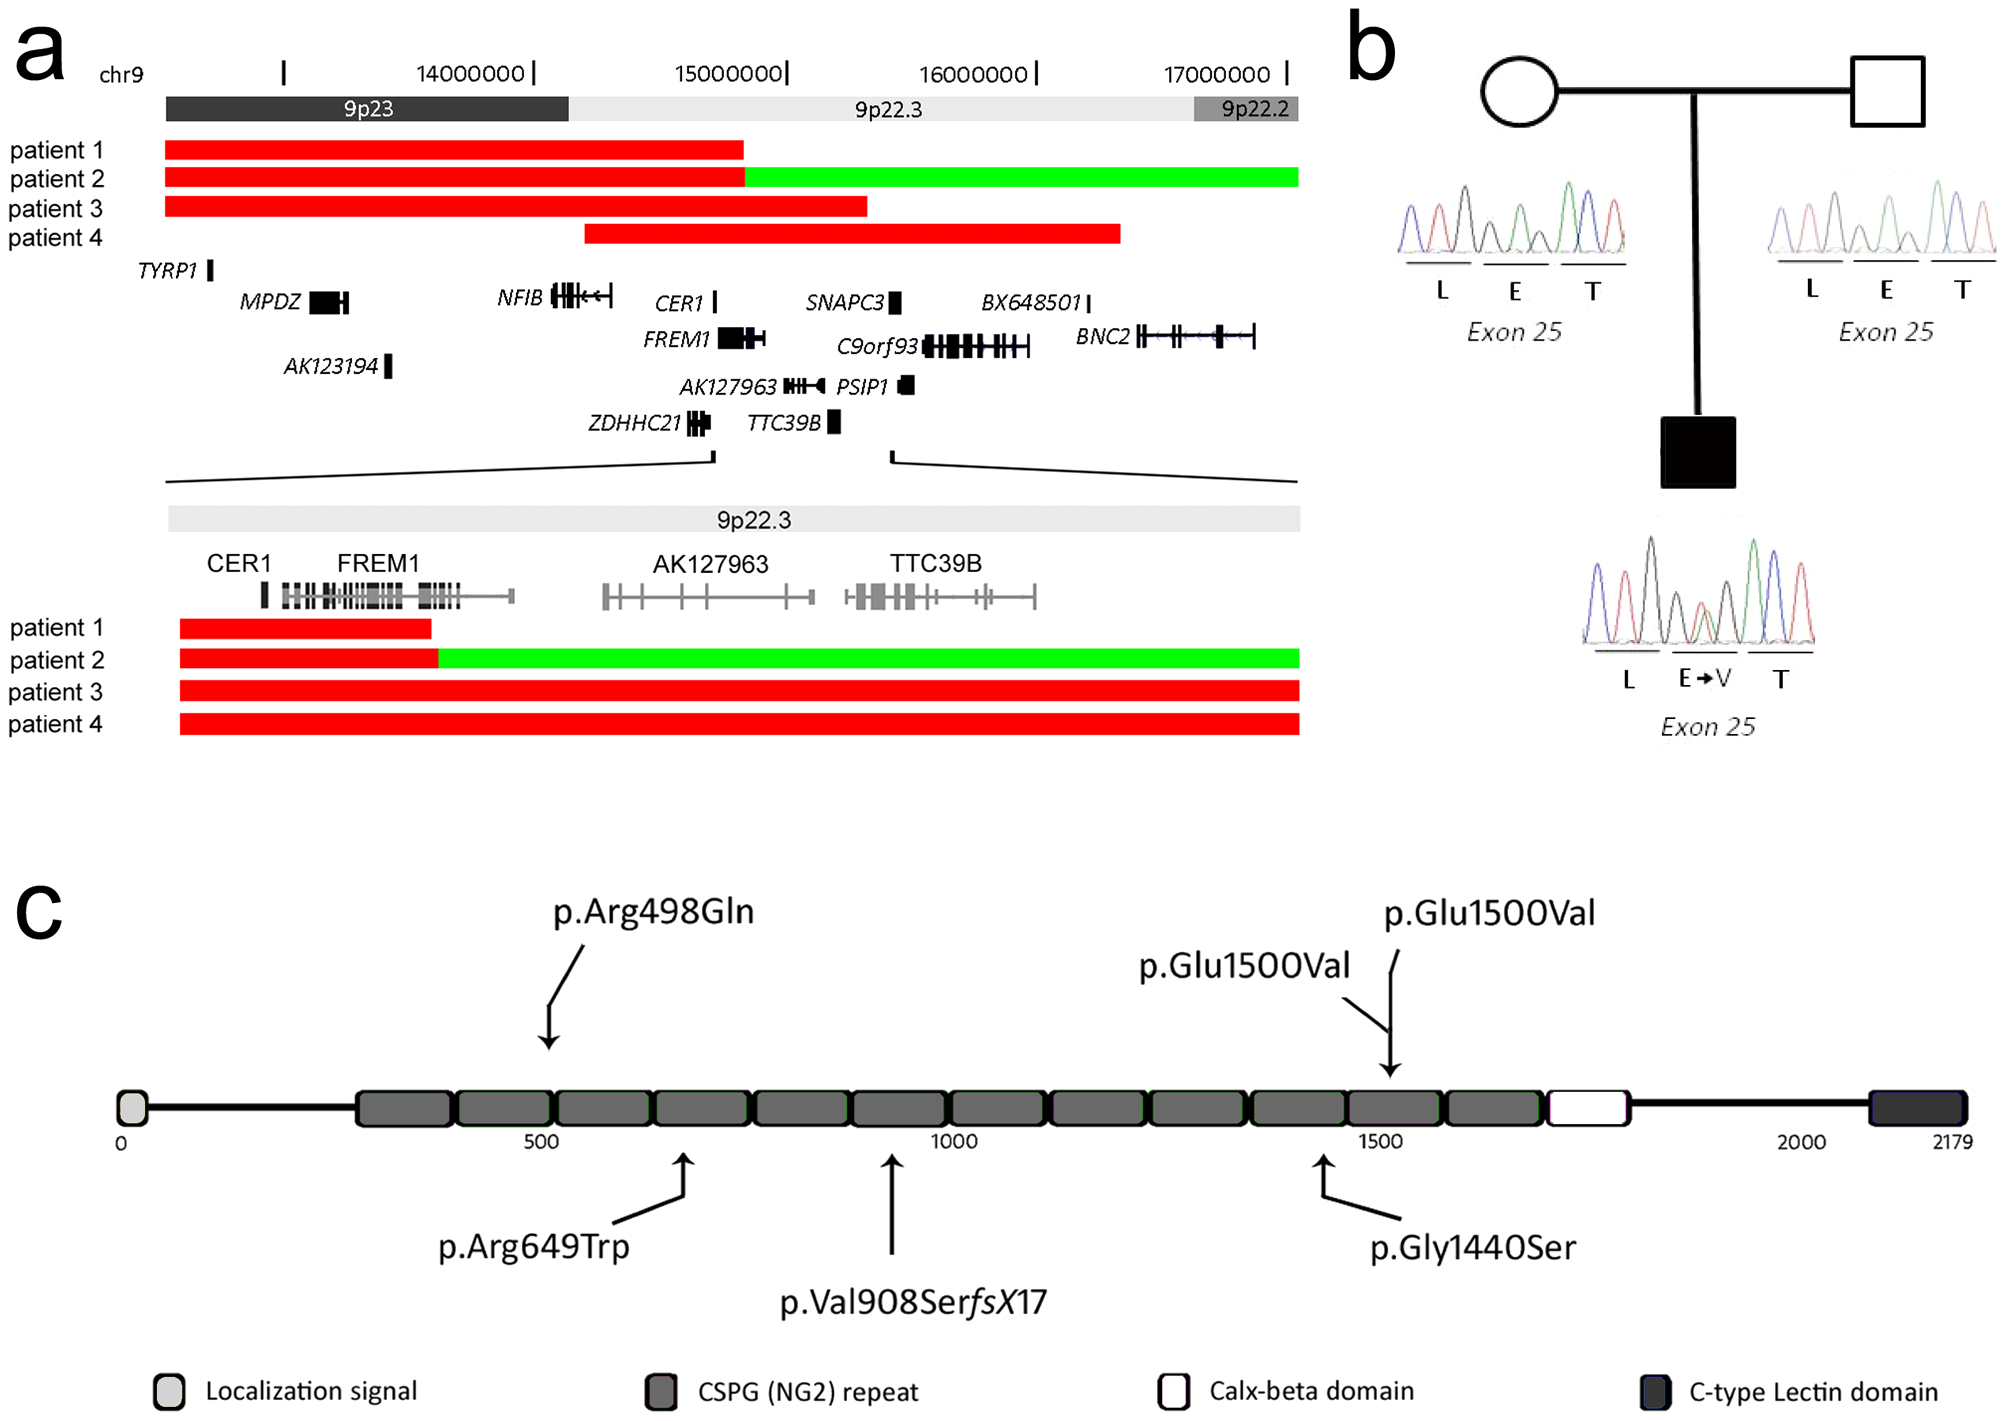 Schematic overview of CNVs and mutations affecting the <i>FREM1</i> gene.